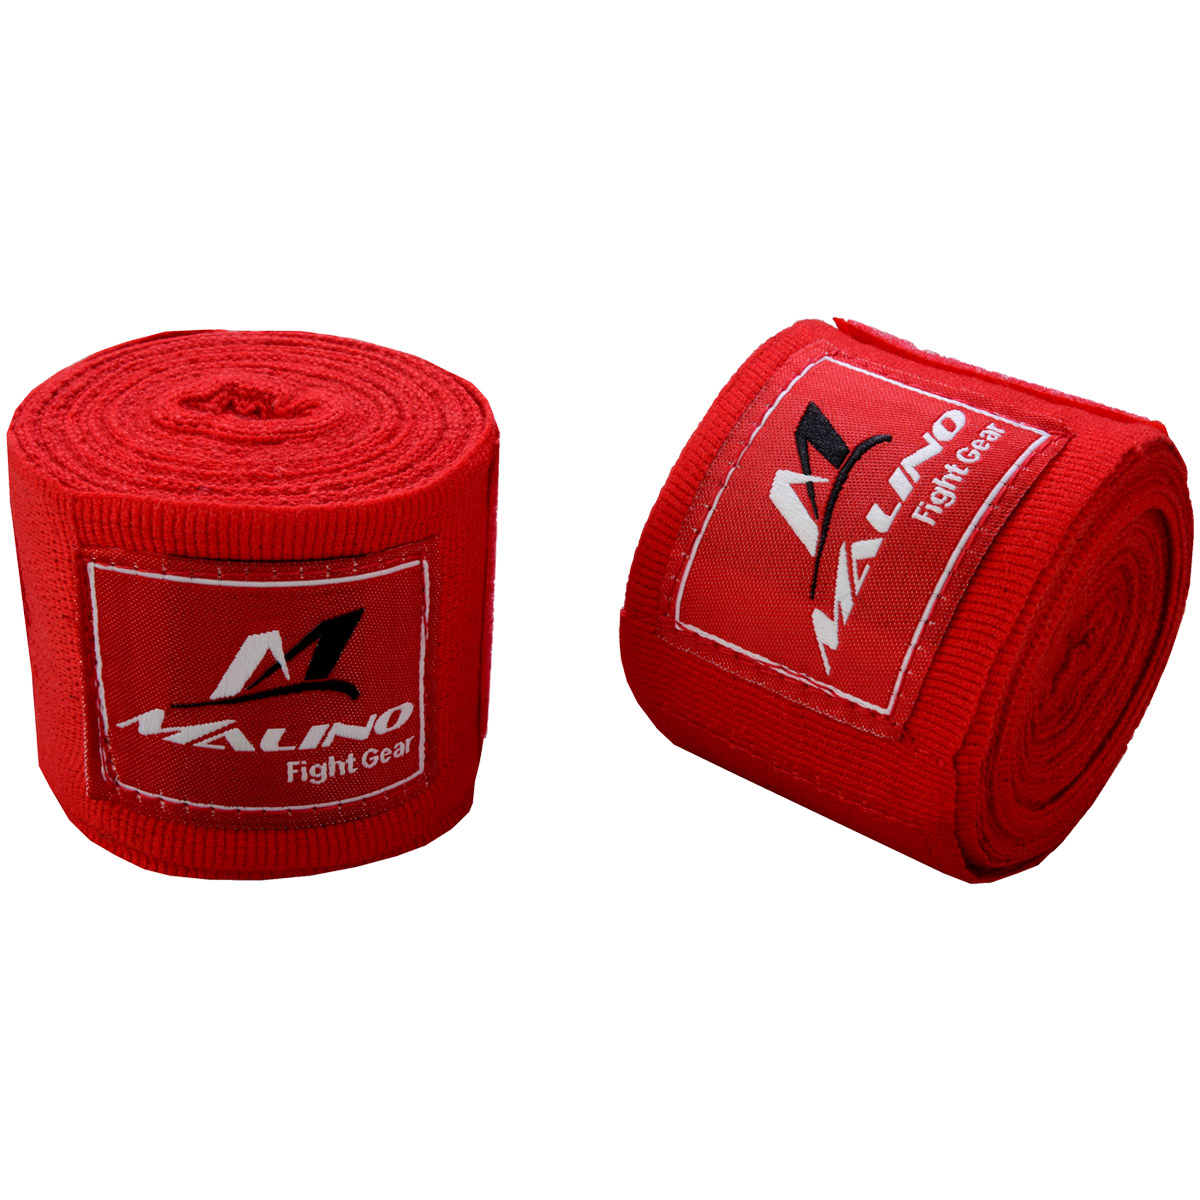 Professional Hand Wraps Boxing Tapes Red